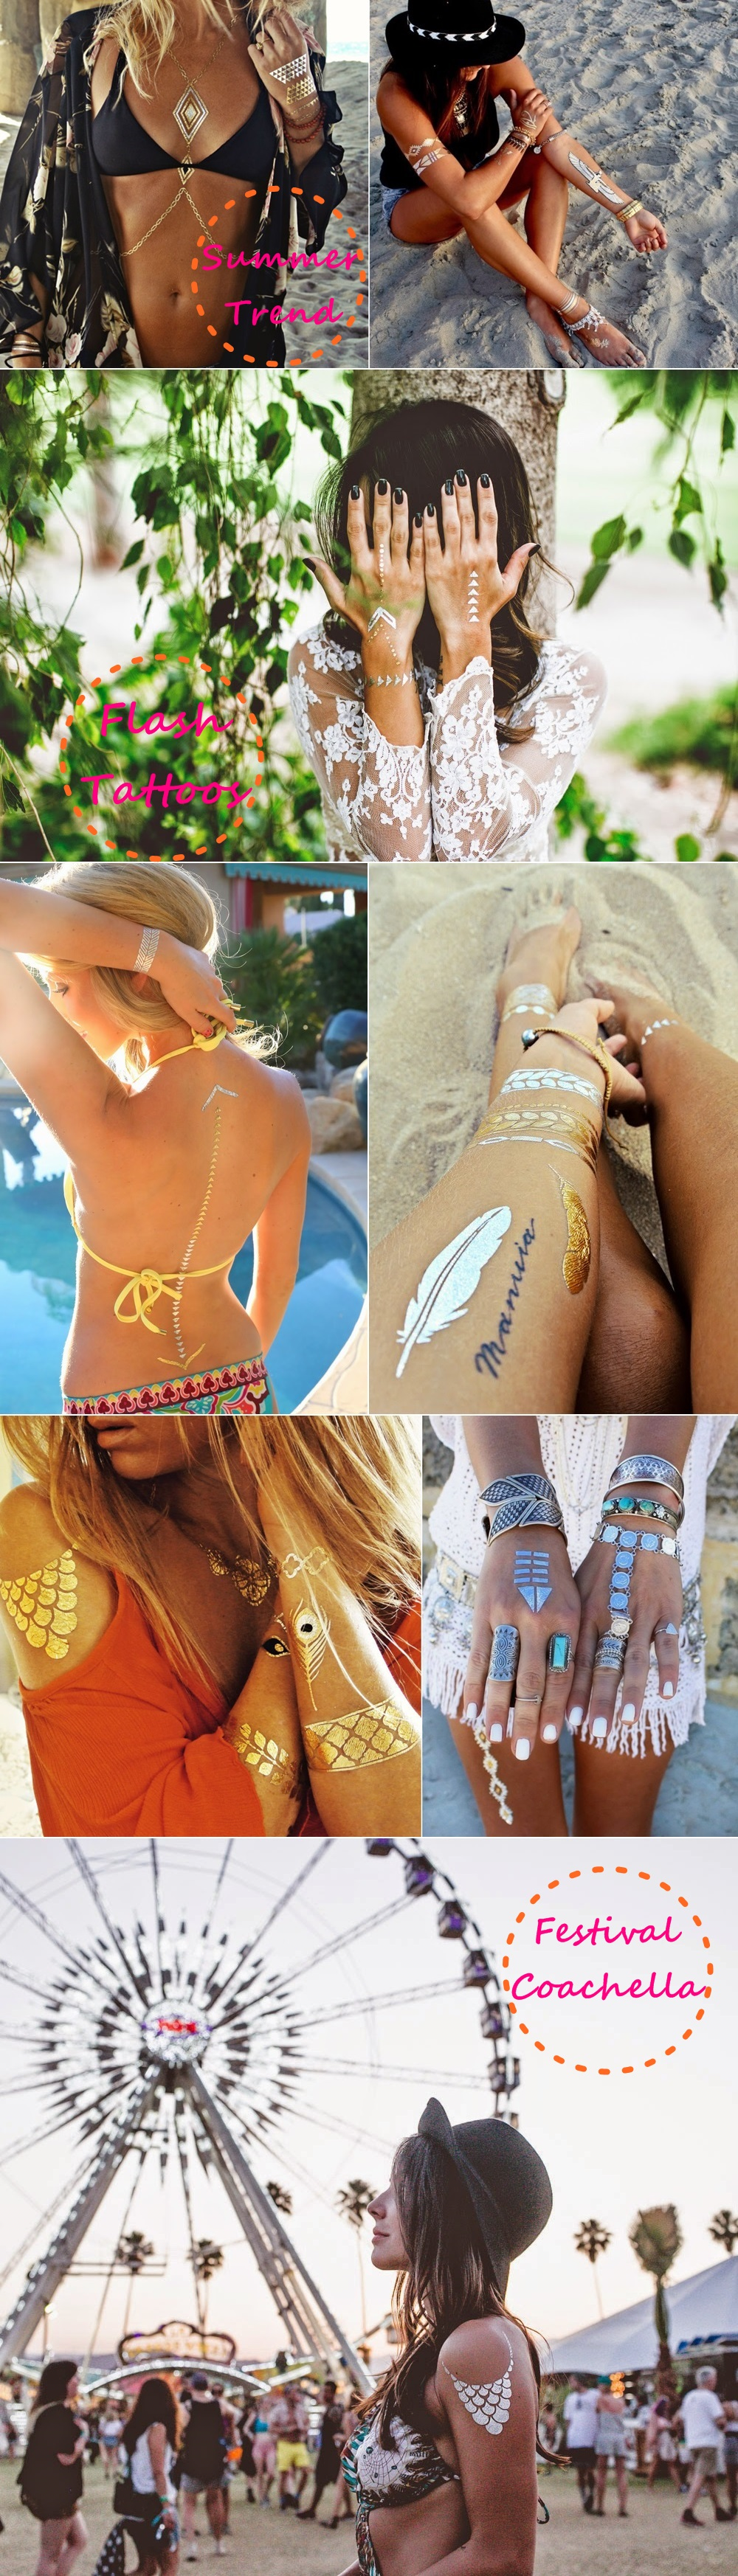 flash tattoos viva moda1